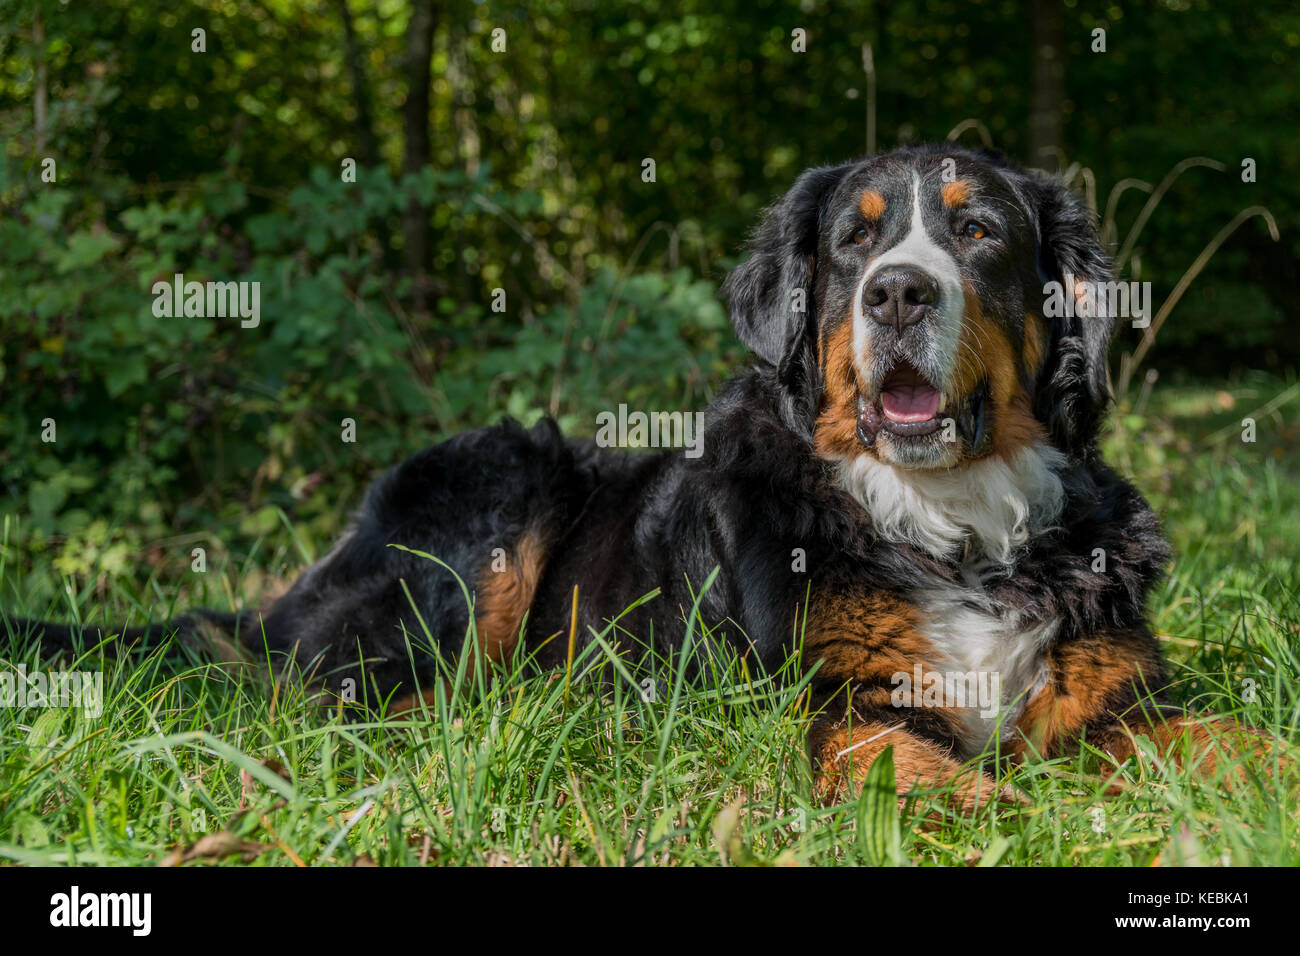 berner sennenhund stockfotos berner sennenhund bilder alamy. Black Bedroom Furniture Sets. Home Design Ideas